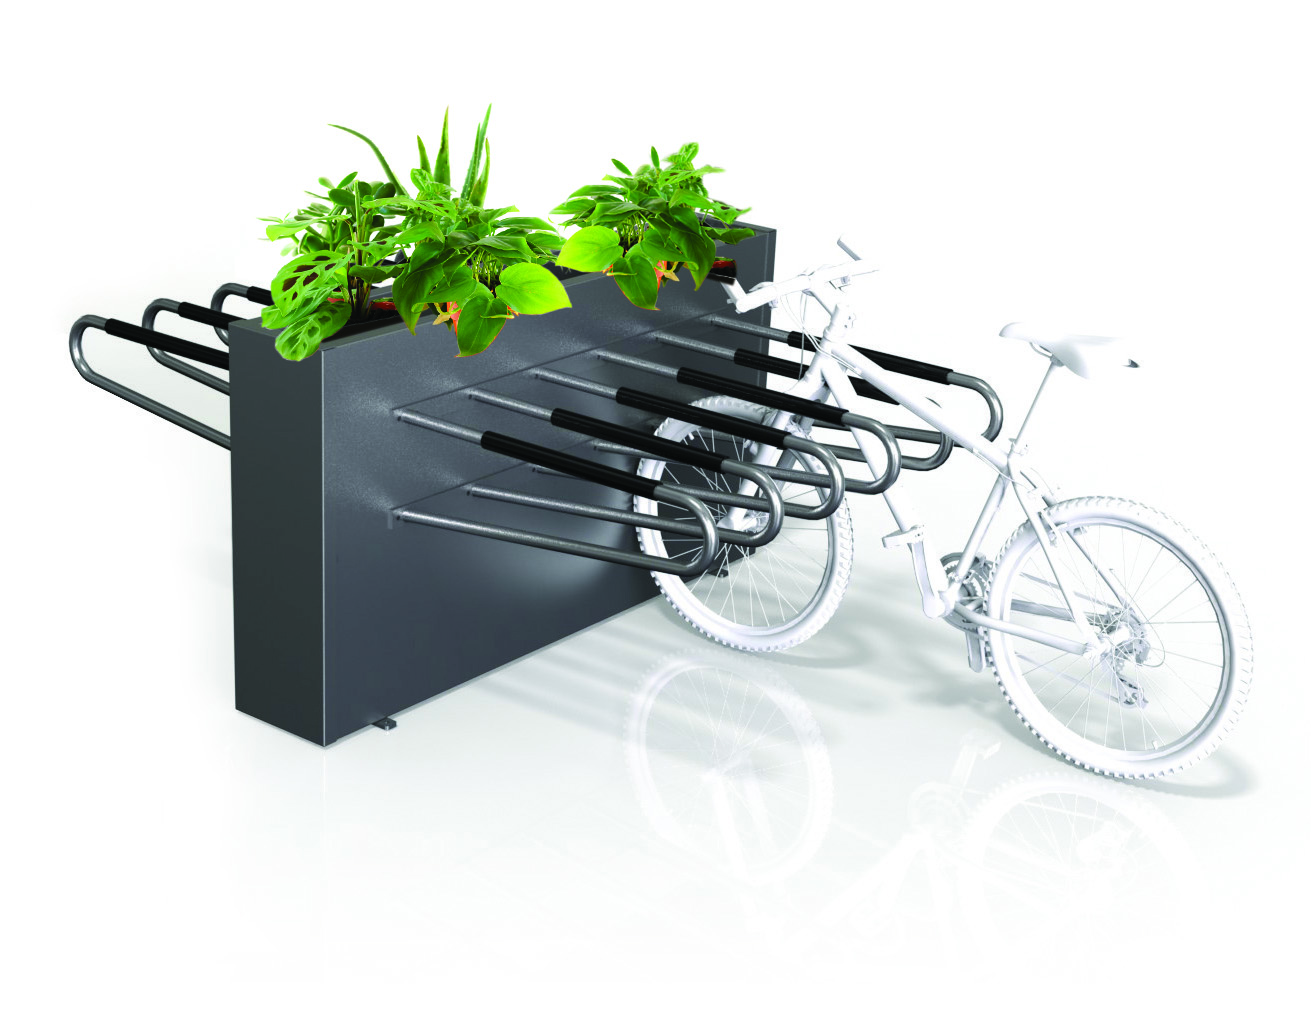 Double Sided Planter Box 12 Bike Rack